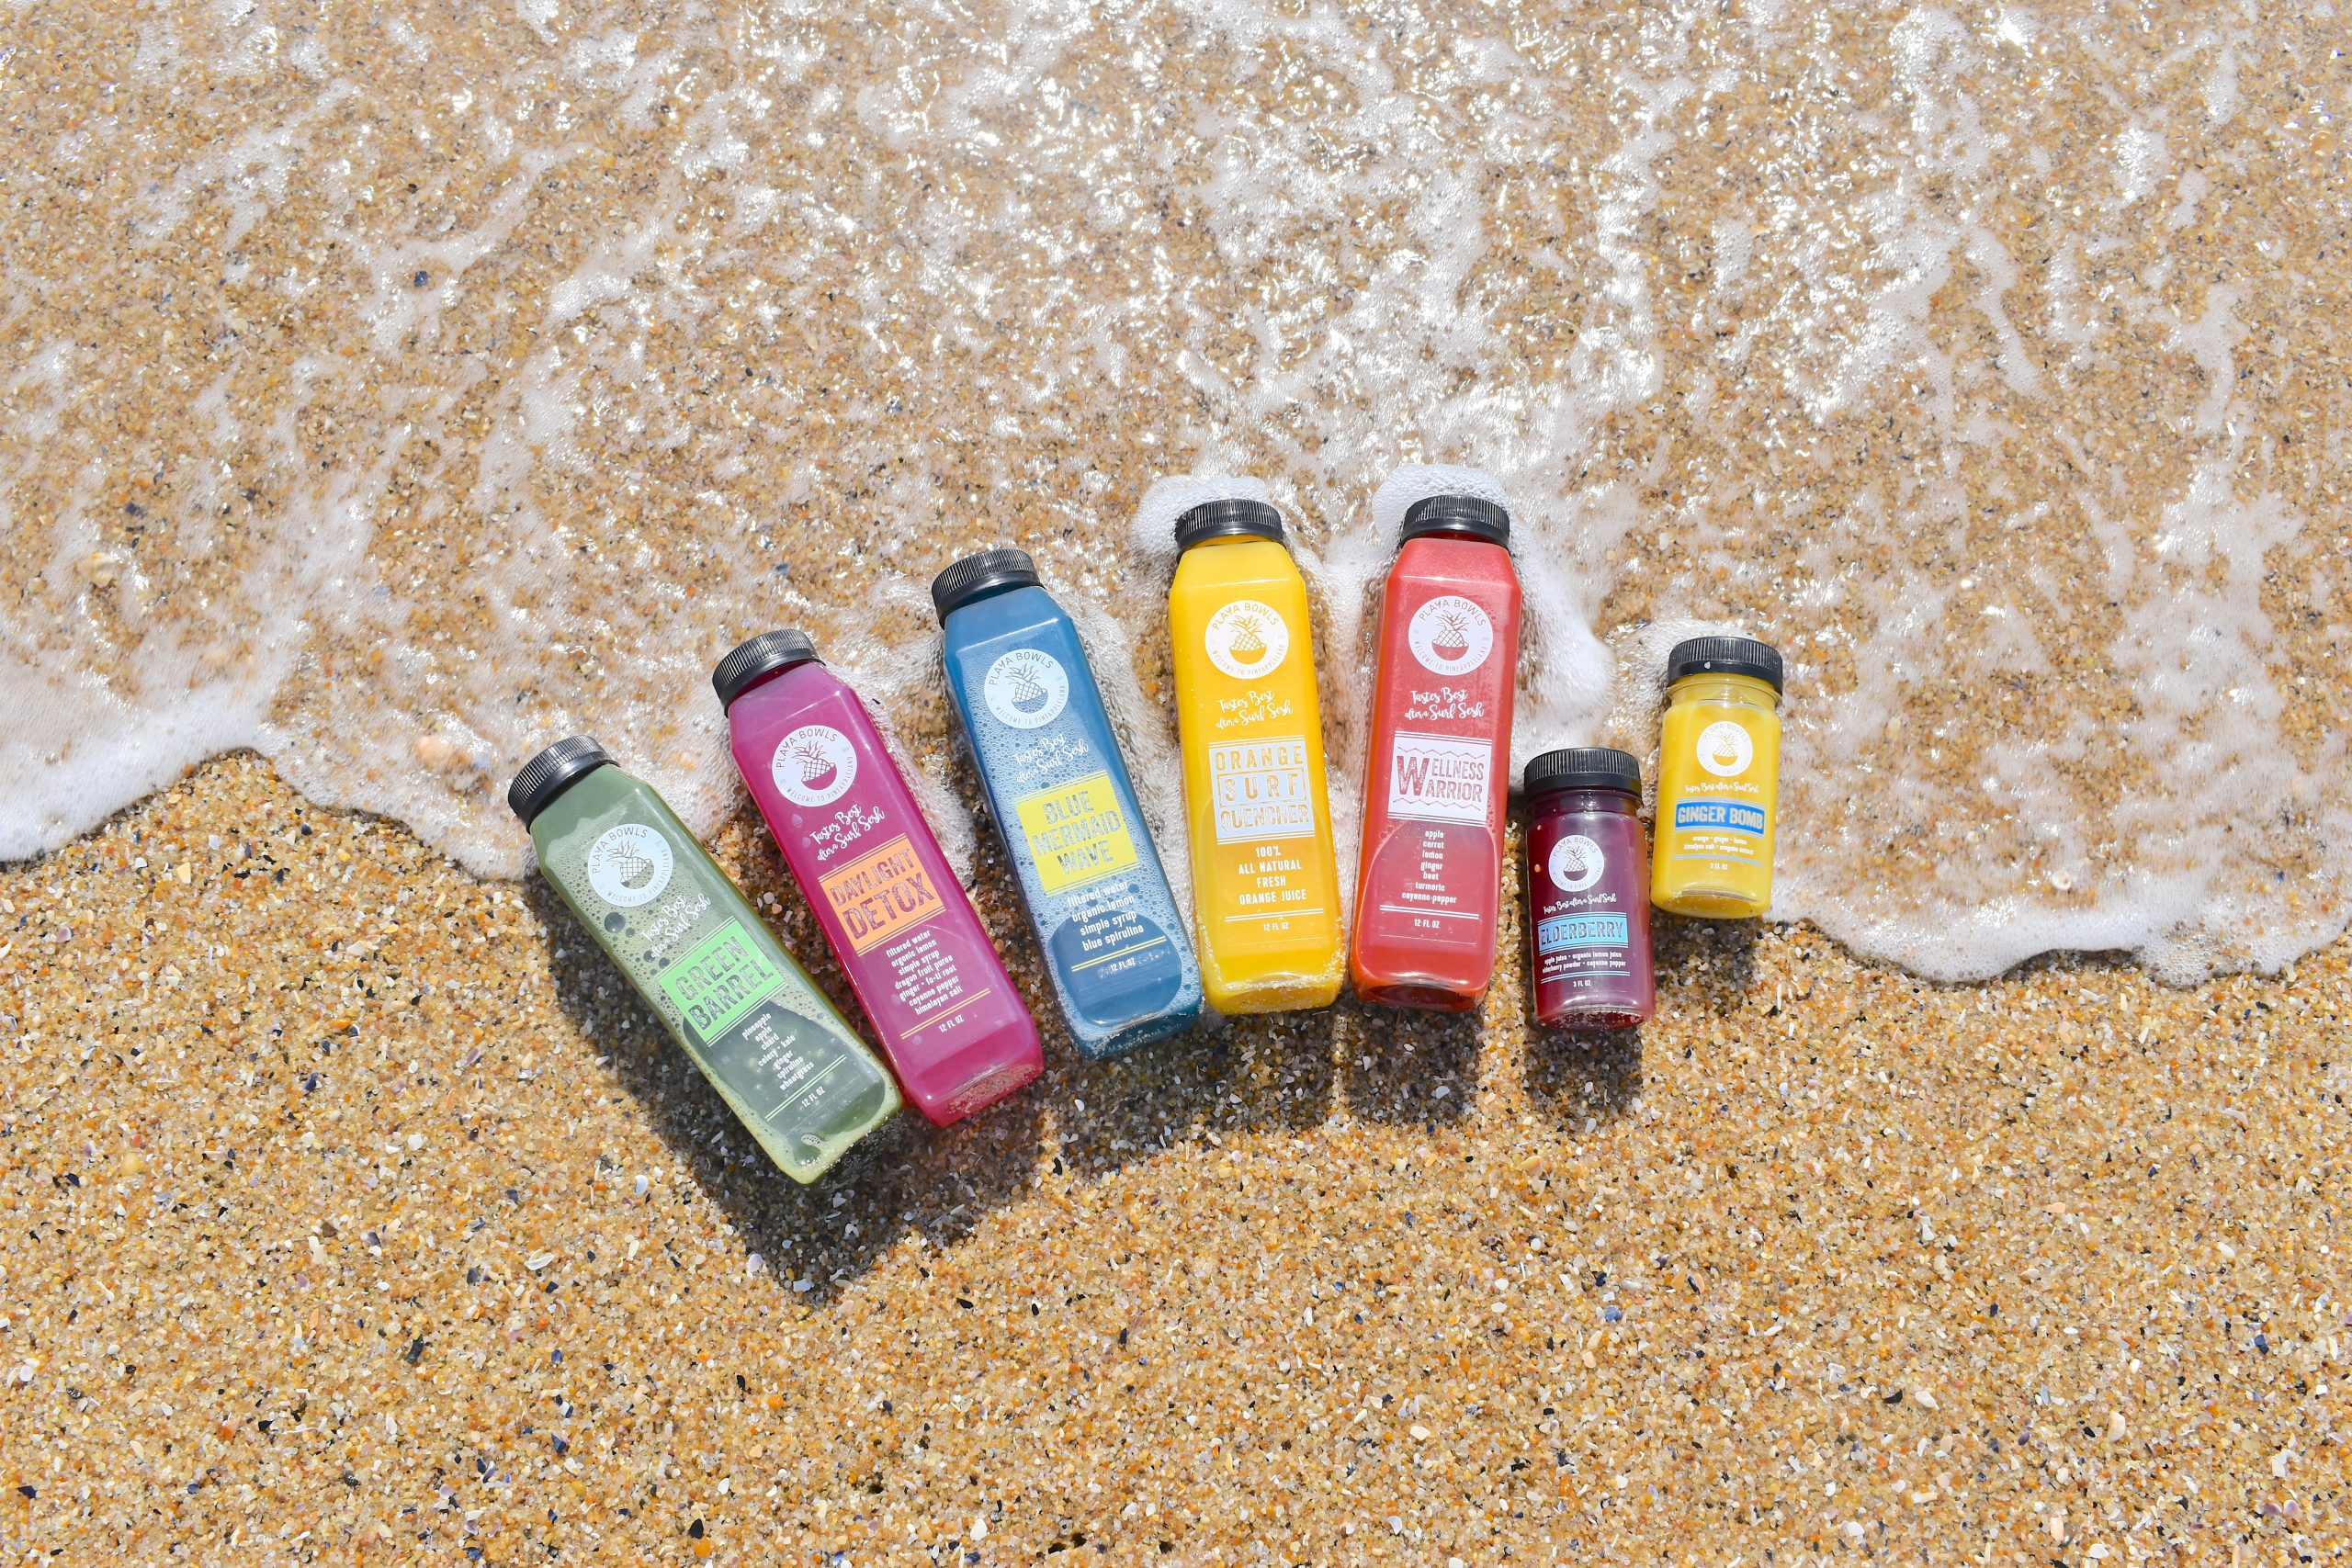 ALL NEW: Playa Cold Pressed Juices are here!